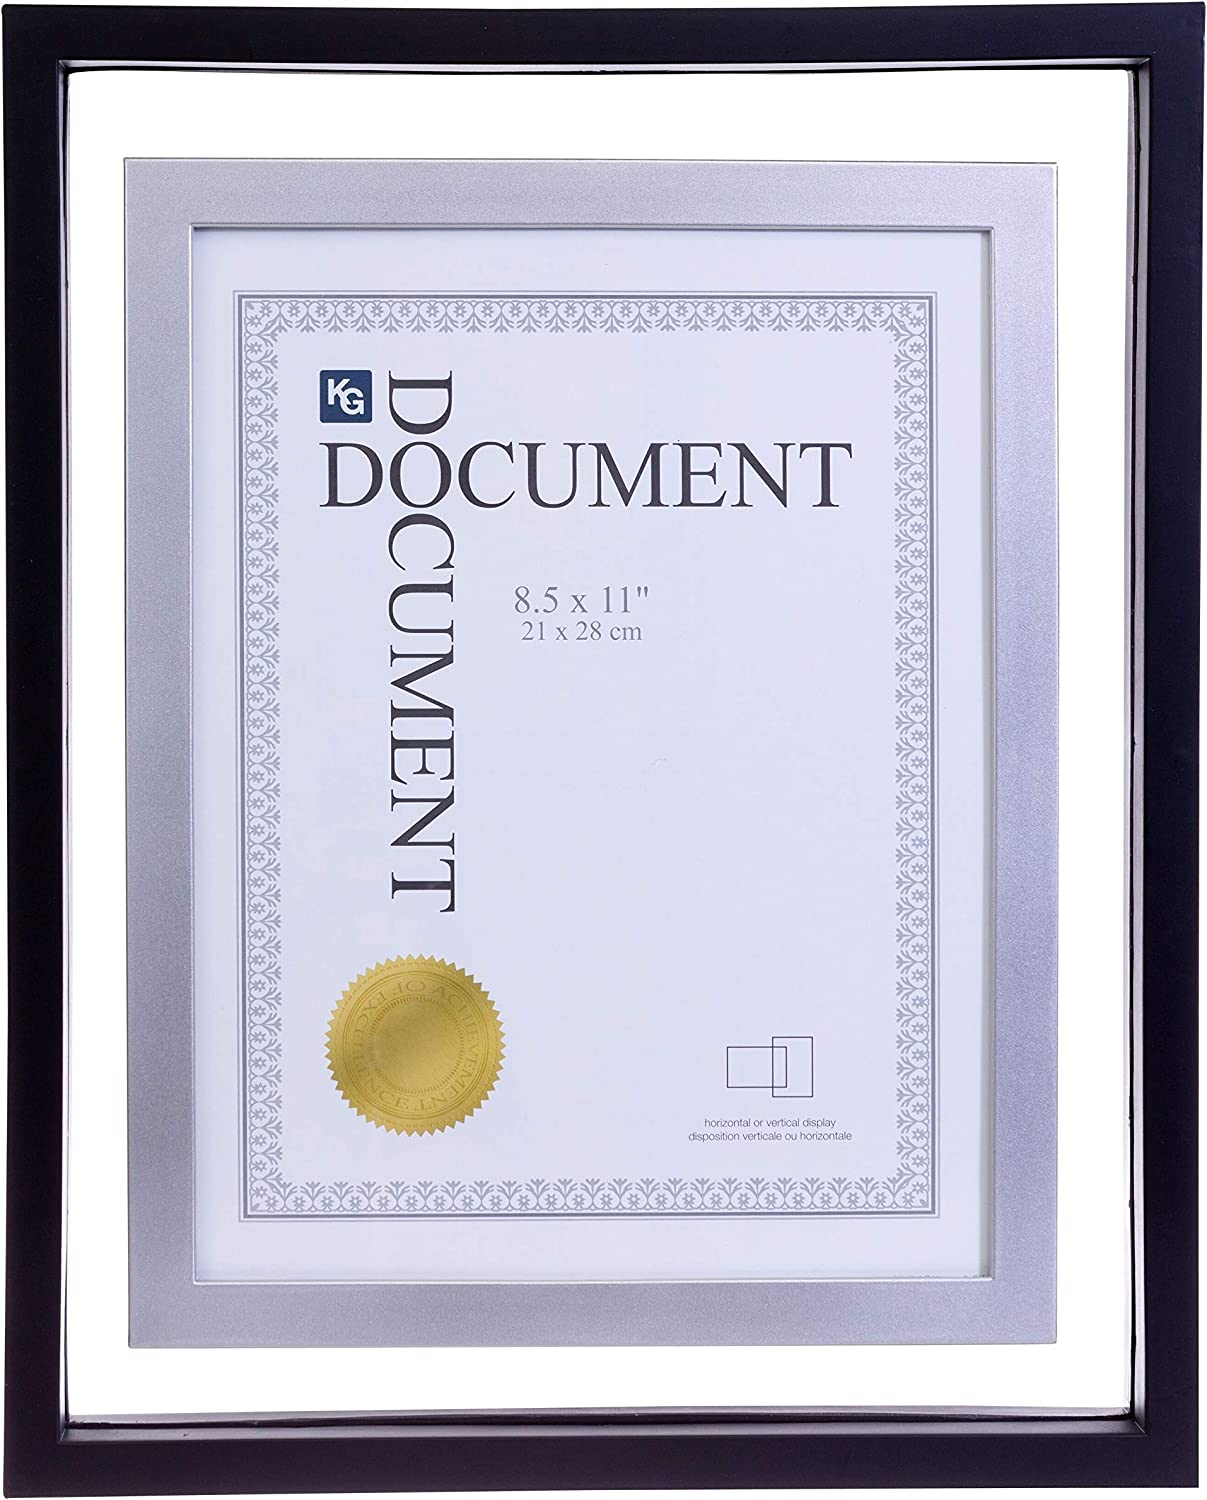 MISC City Popular brand in the world Float Ranking TOP16 Document Frame